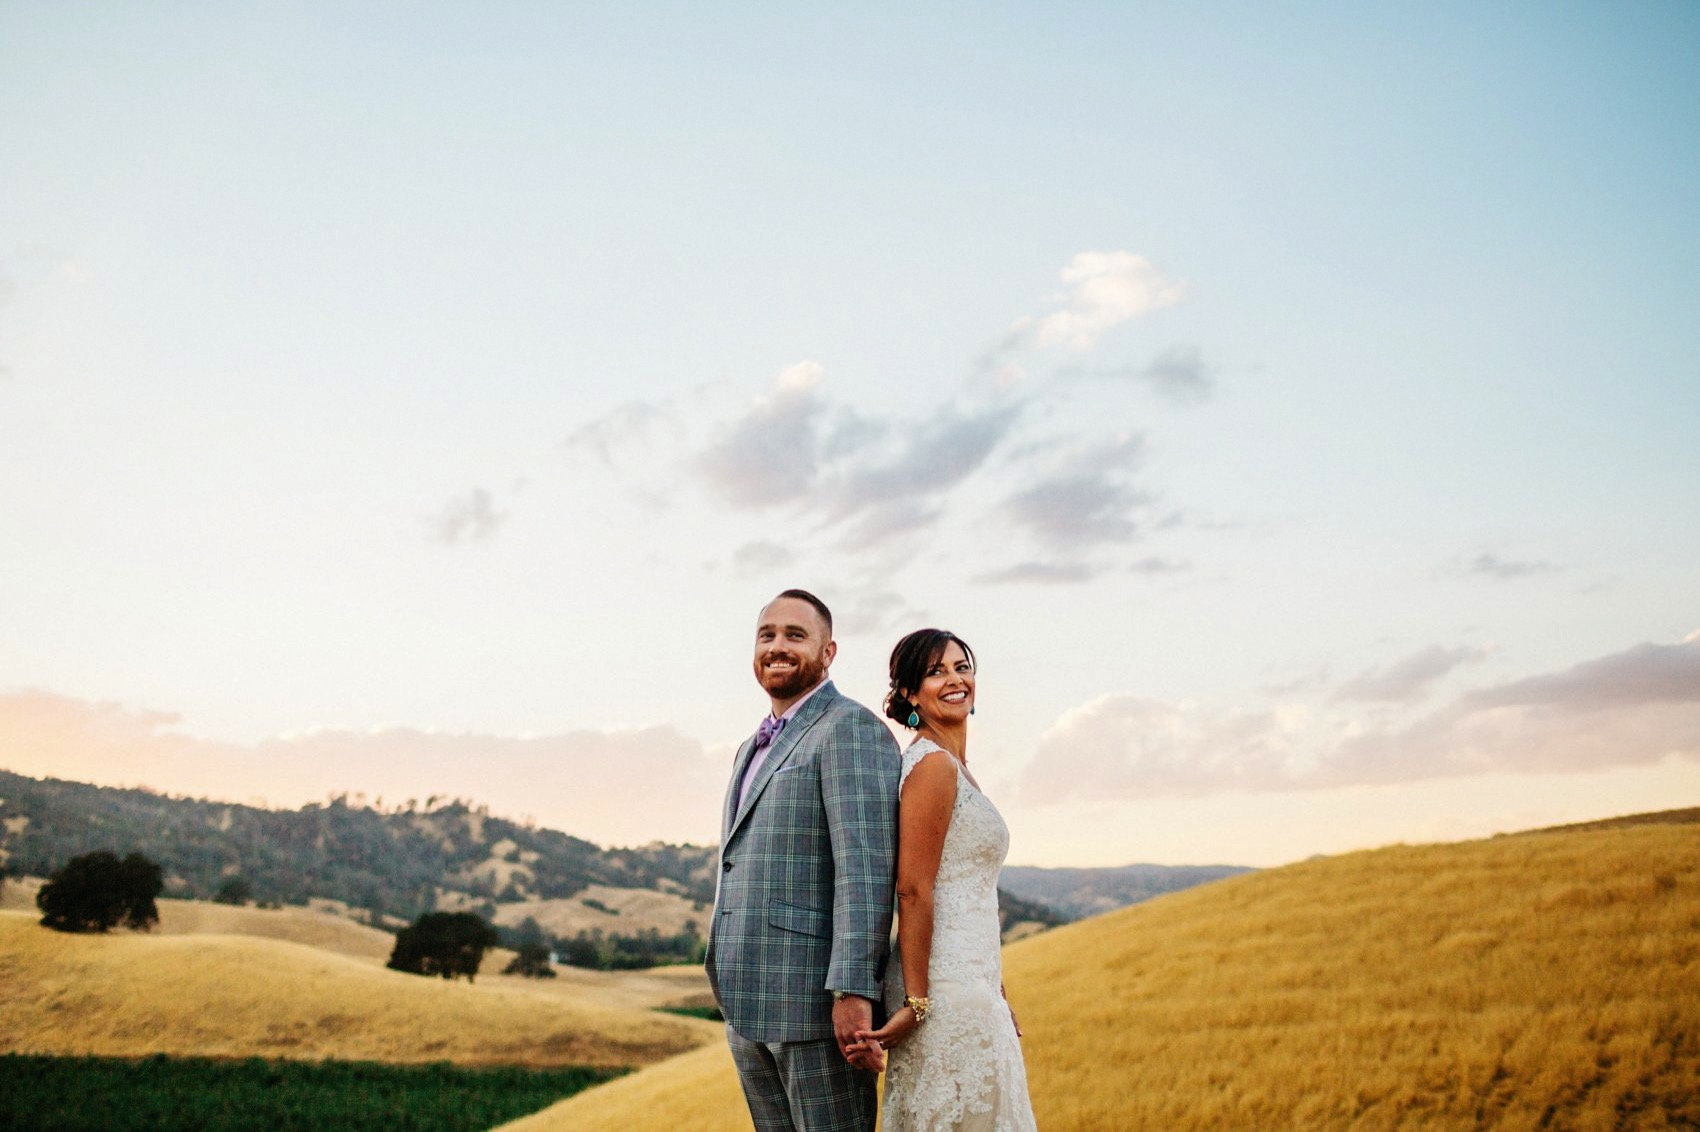 Taber Ranch Wedding 048 photo